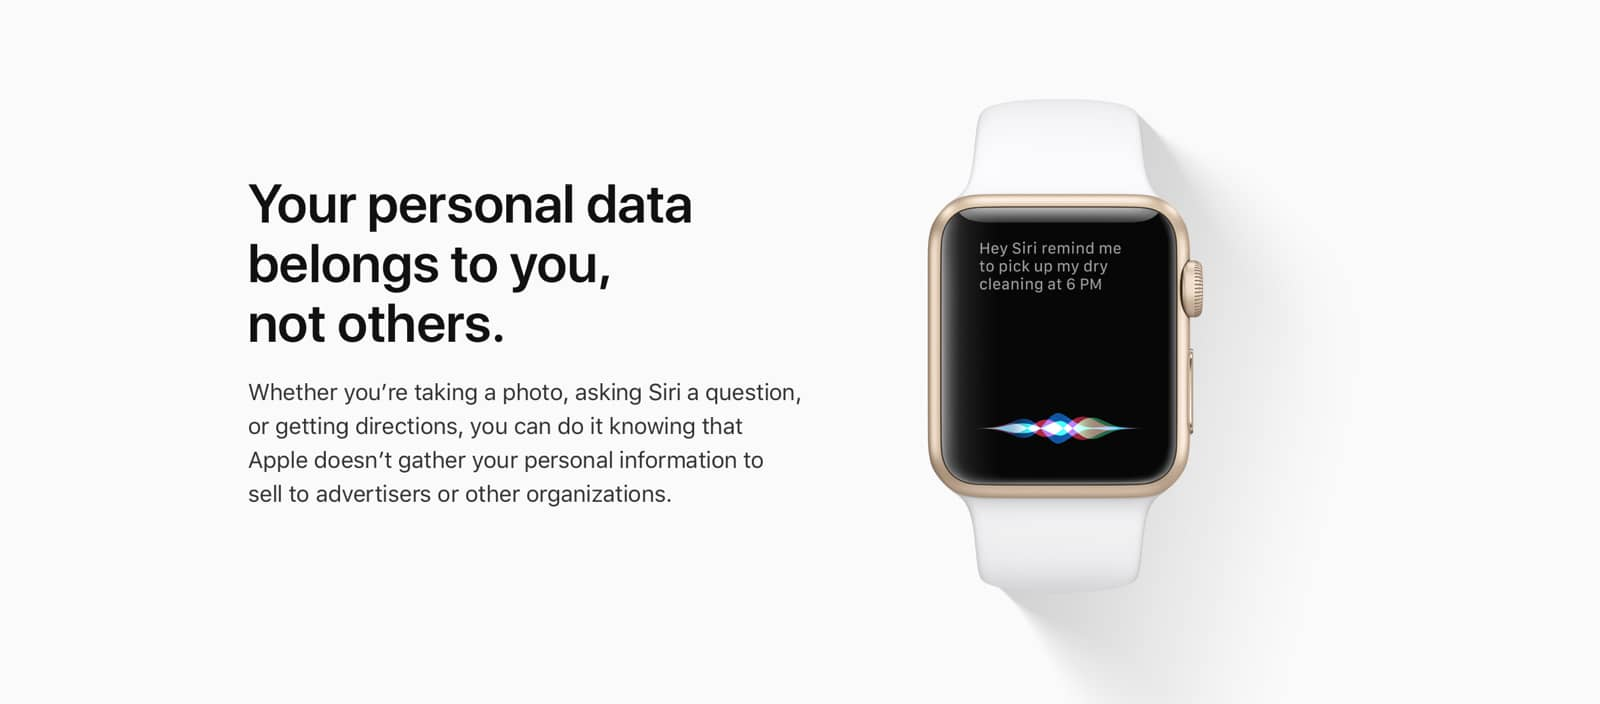 Screenshot of Apple Watch from Apple privacy page.